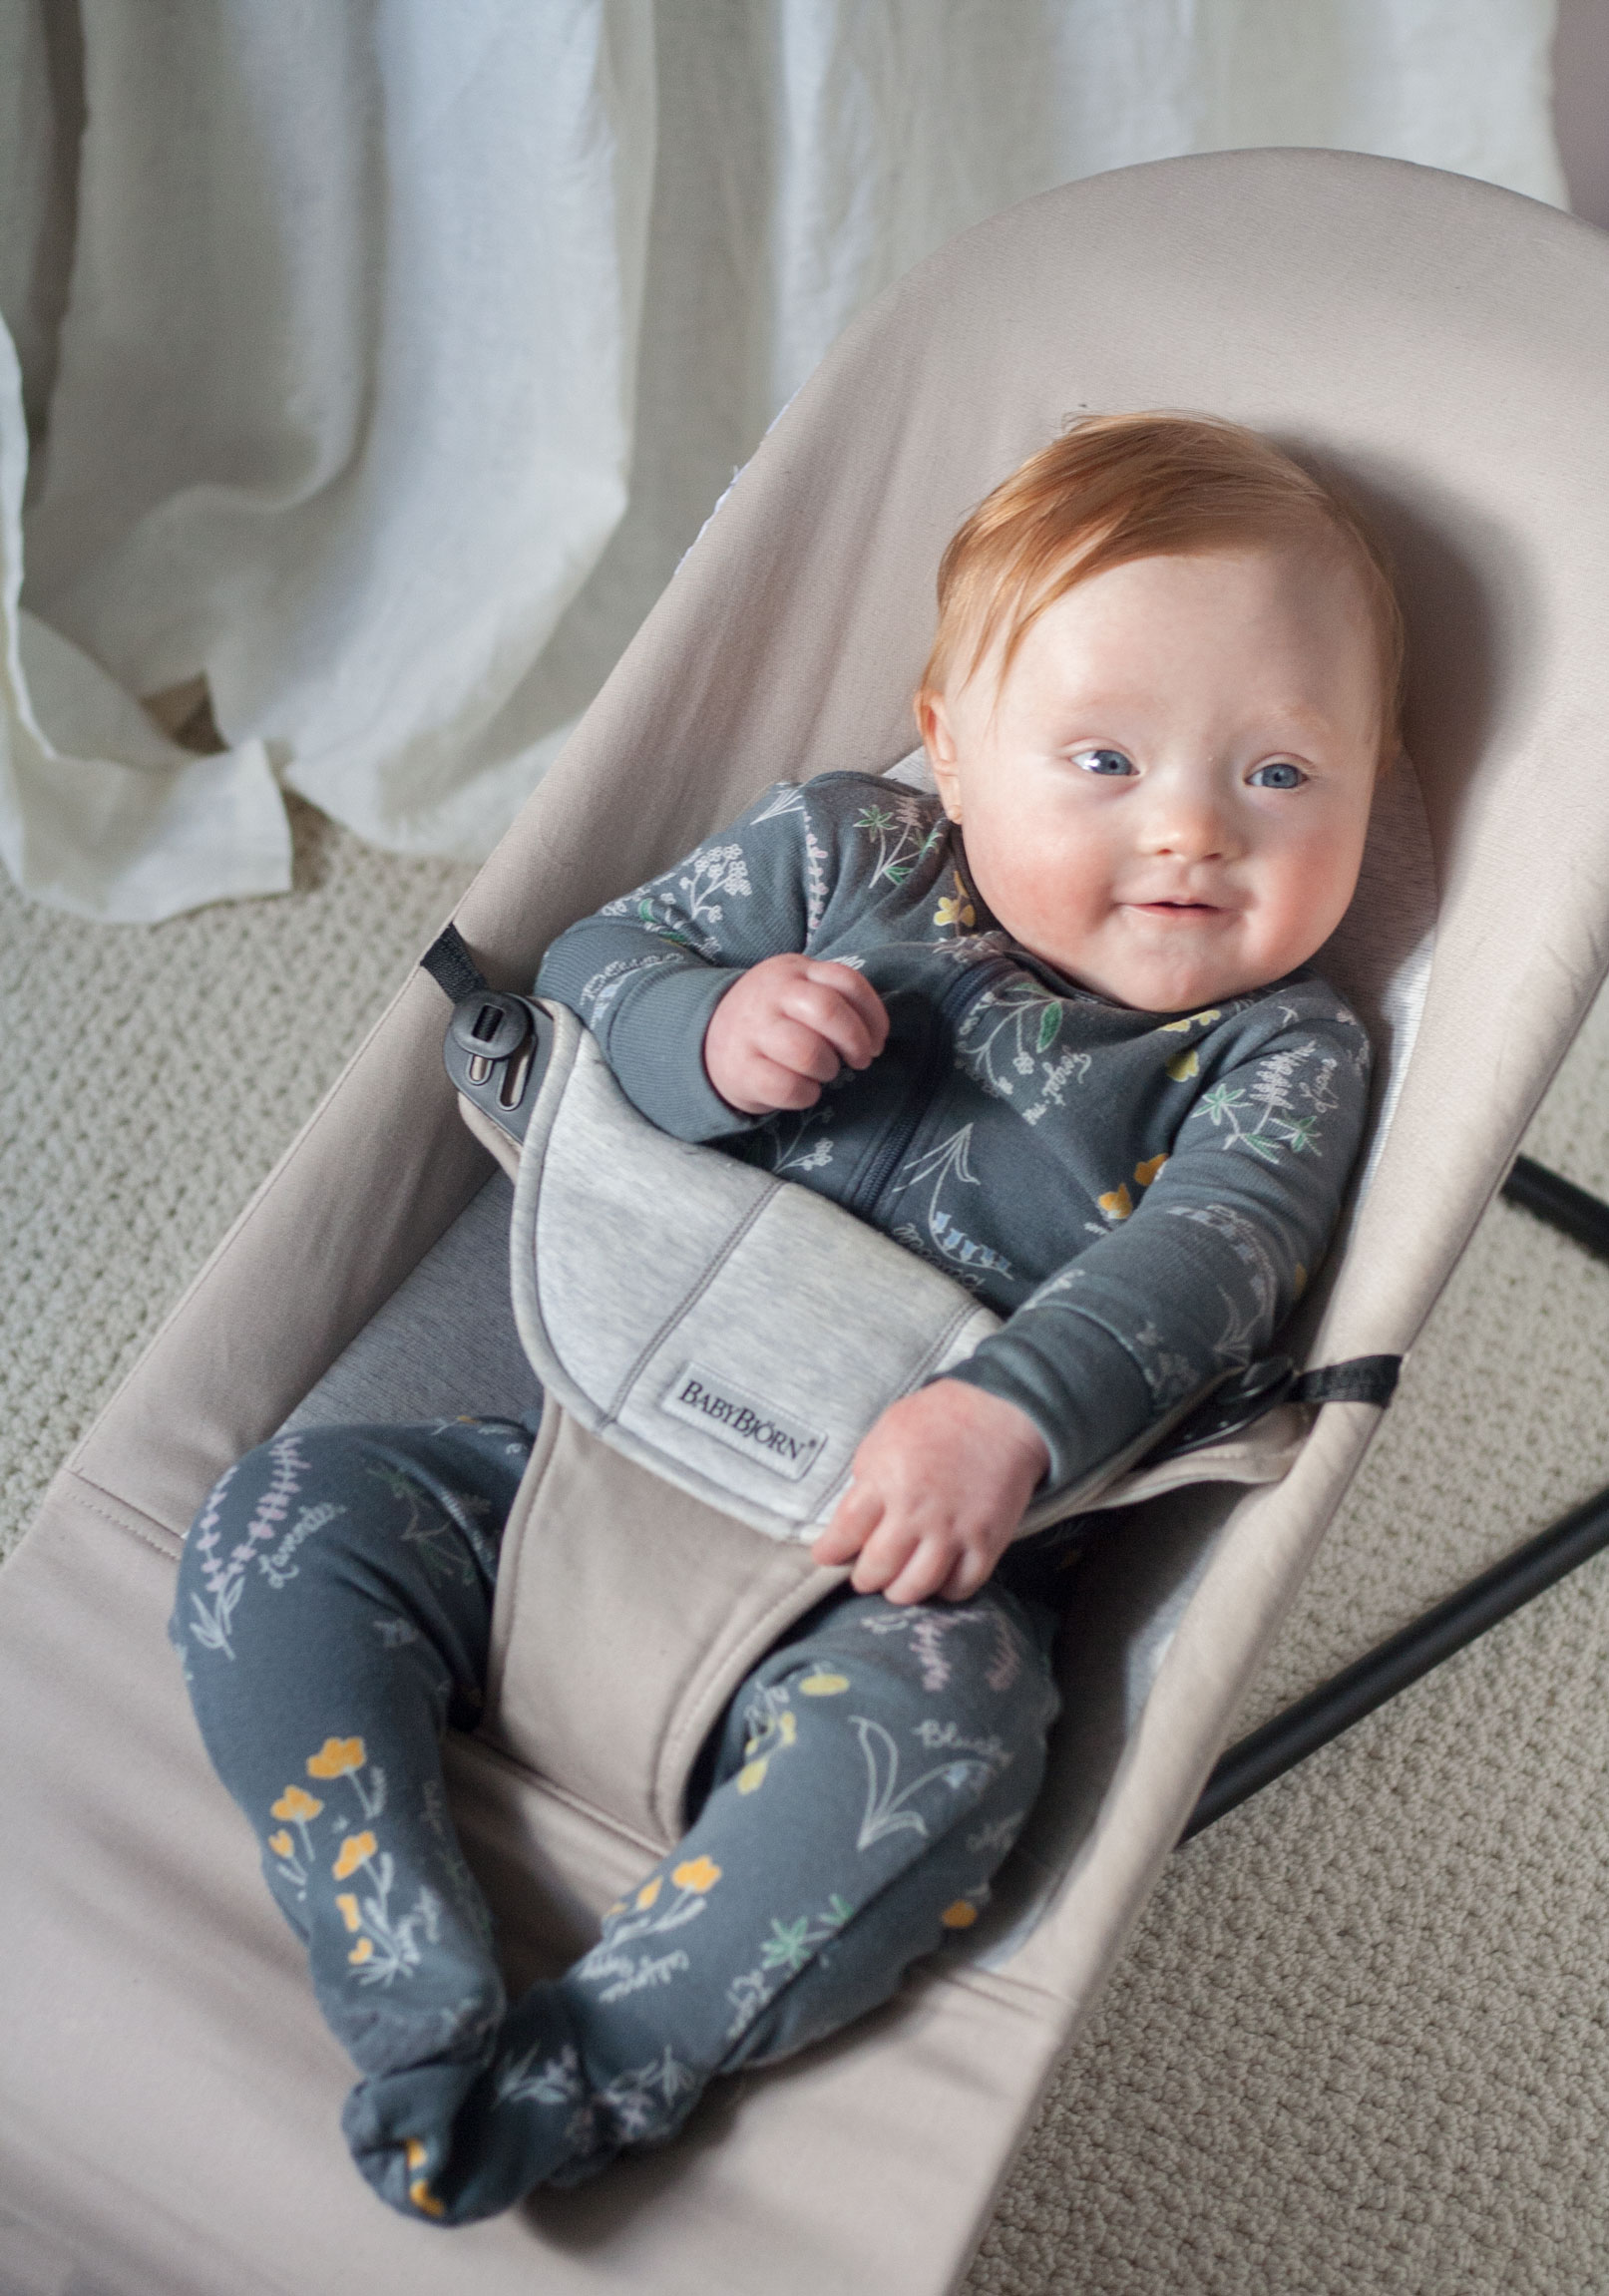 bit-and-bauble-elsa-6-month-baby-update-down-syndrome